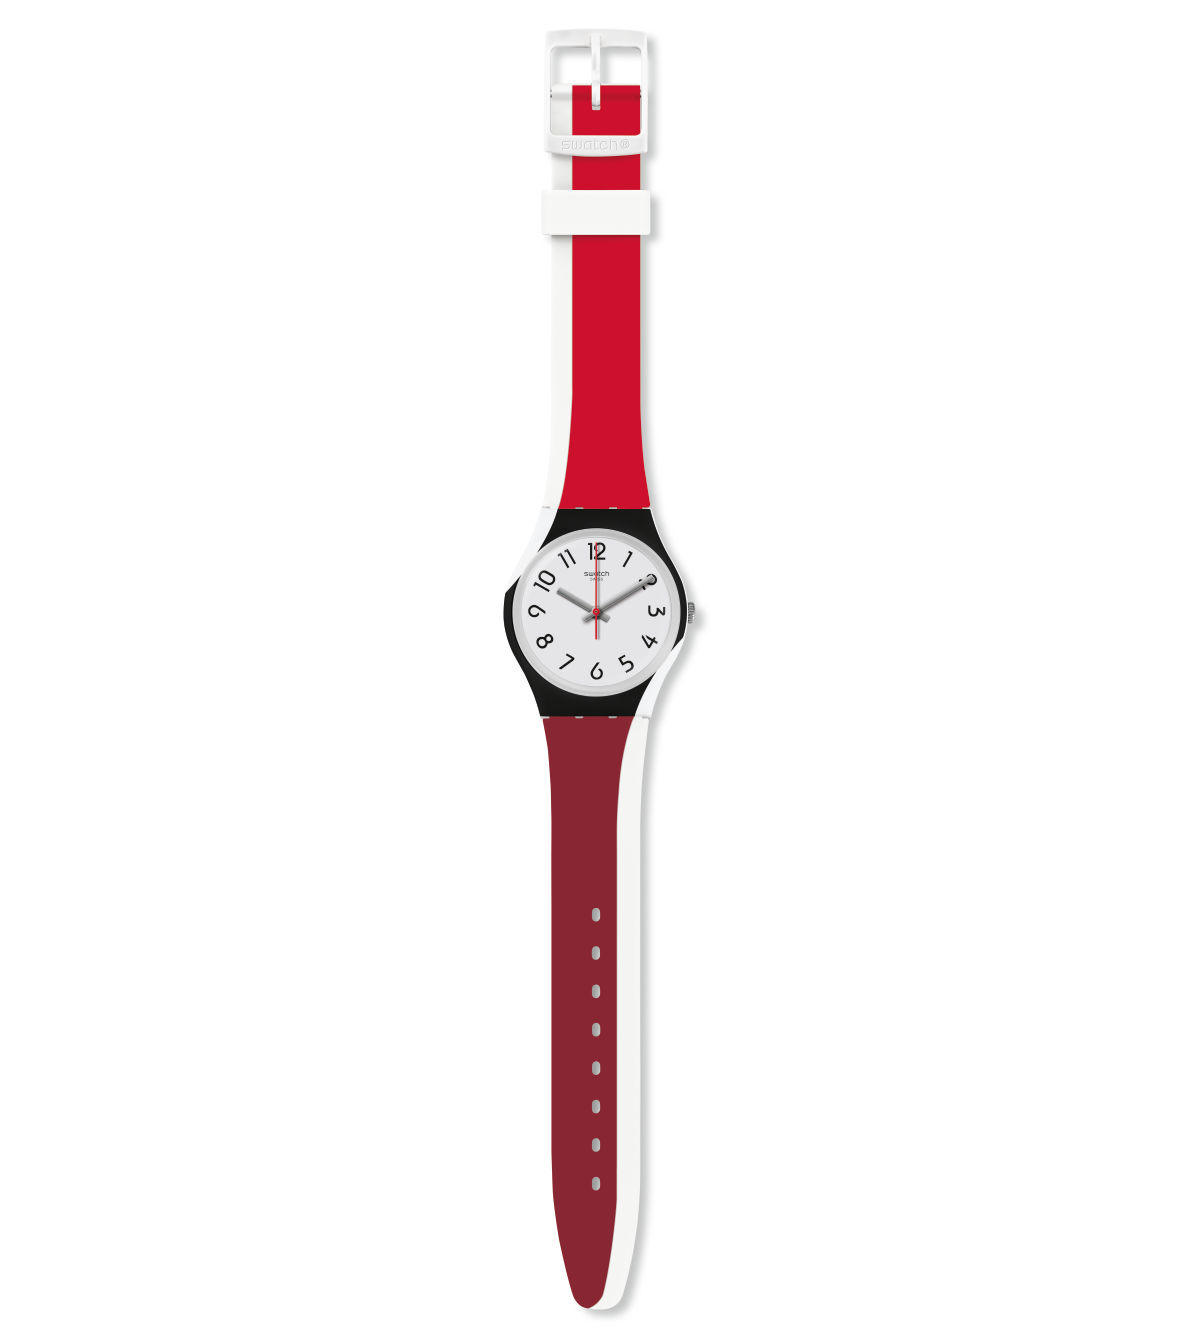 d044e957c Swatch® United Kingdom - Swatch® UK - Women's Watches